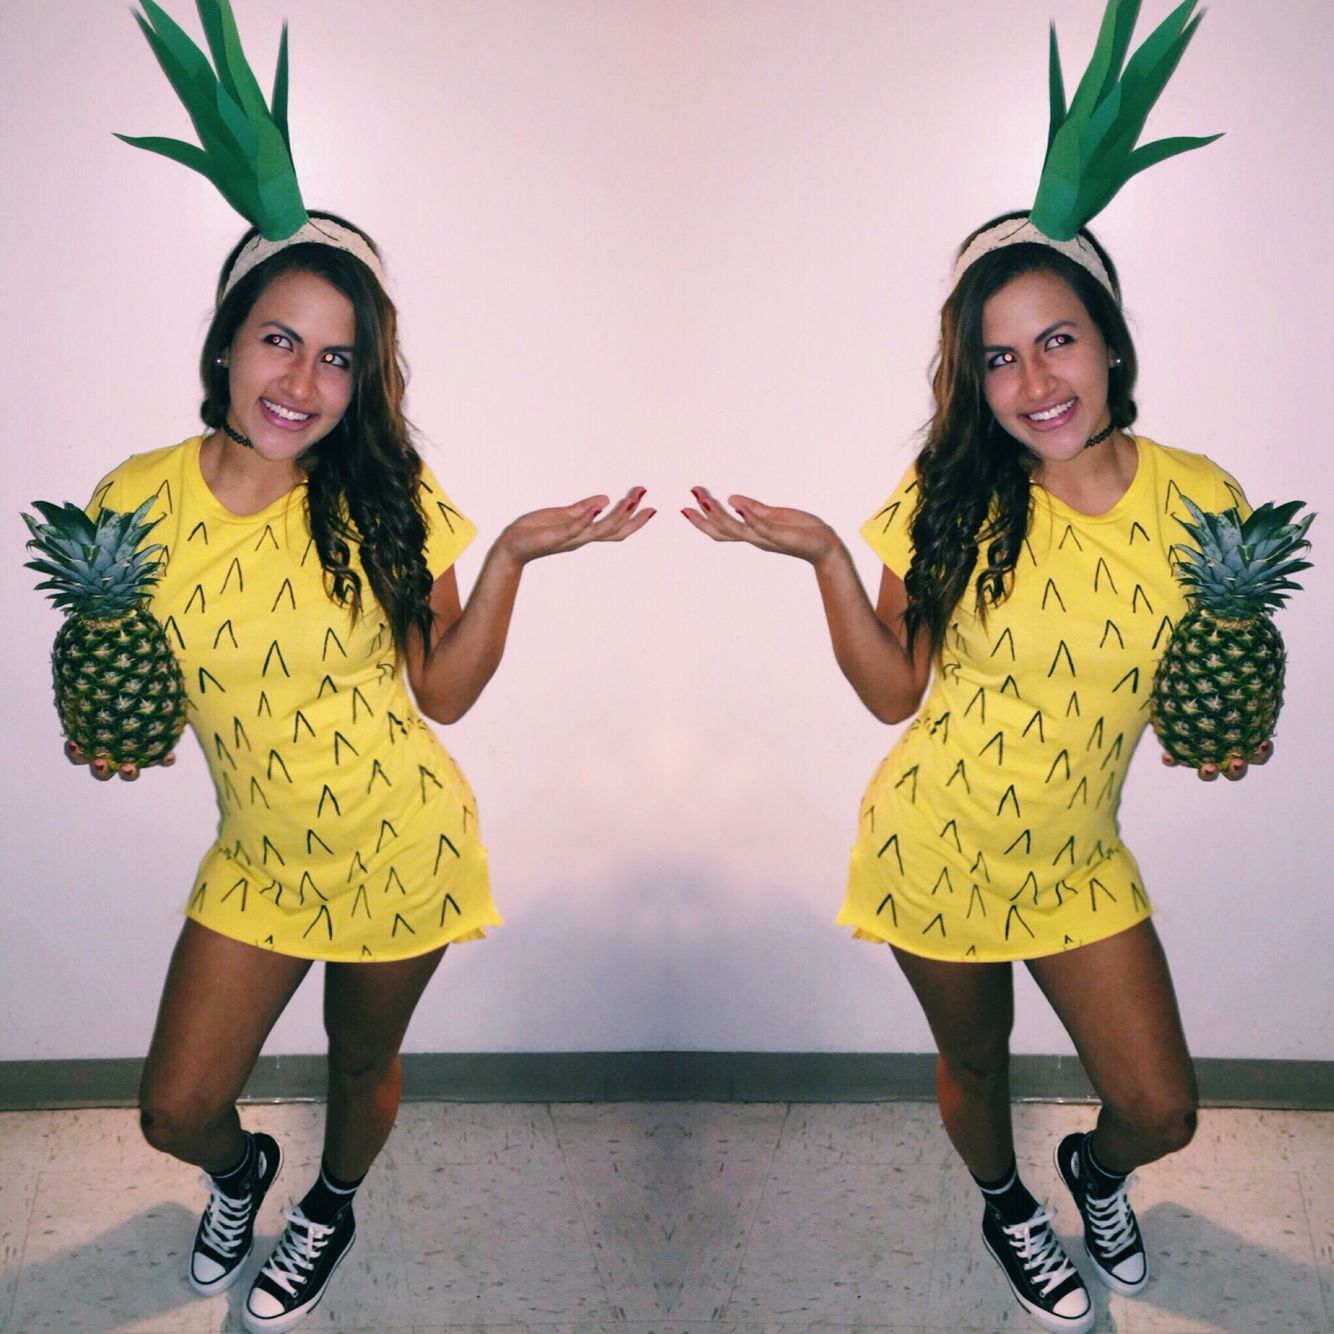 Ananas Kostüm Selber Machen Pineapple Costume Diy Hawaii Pinterest Fasching